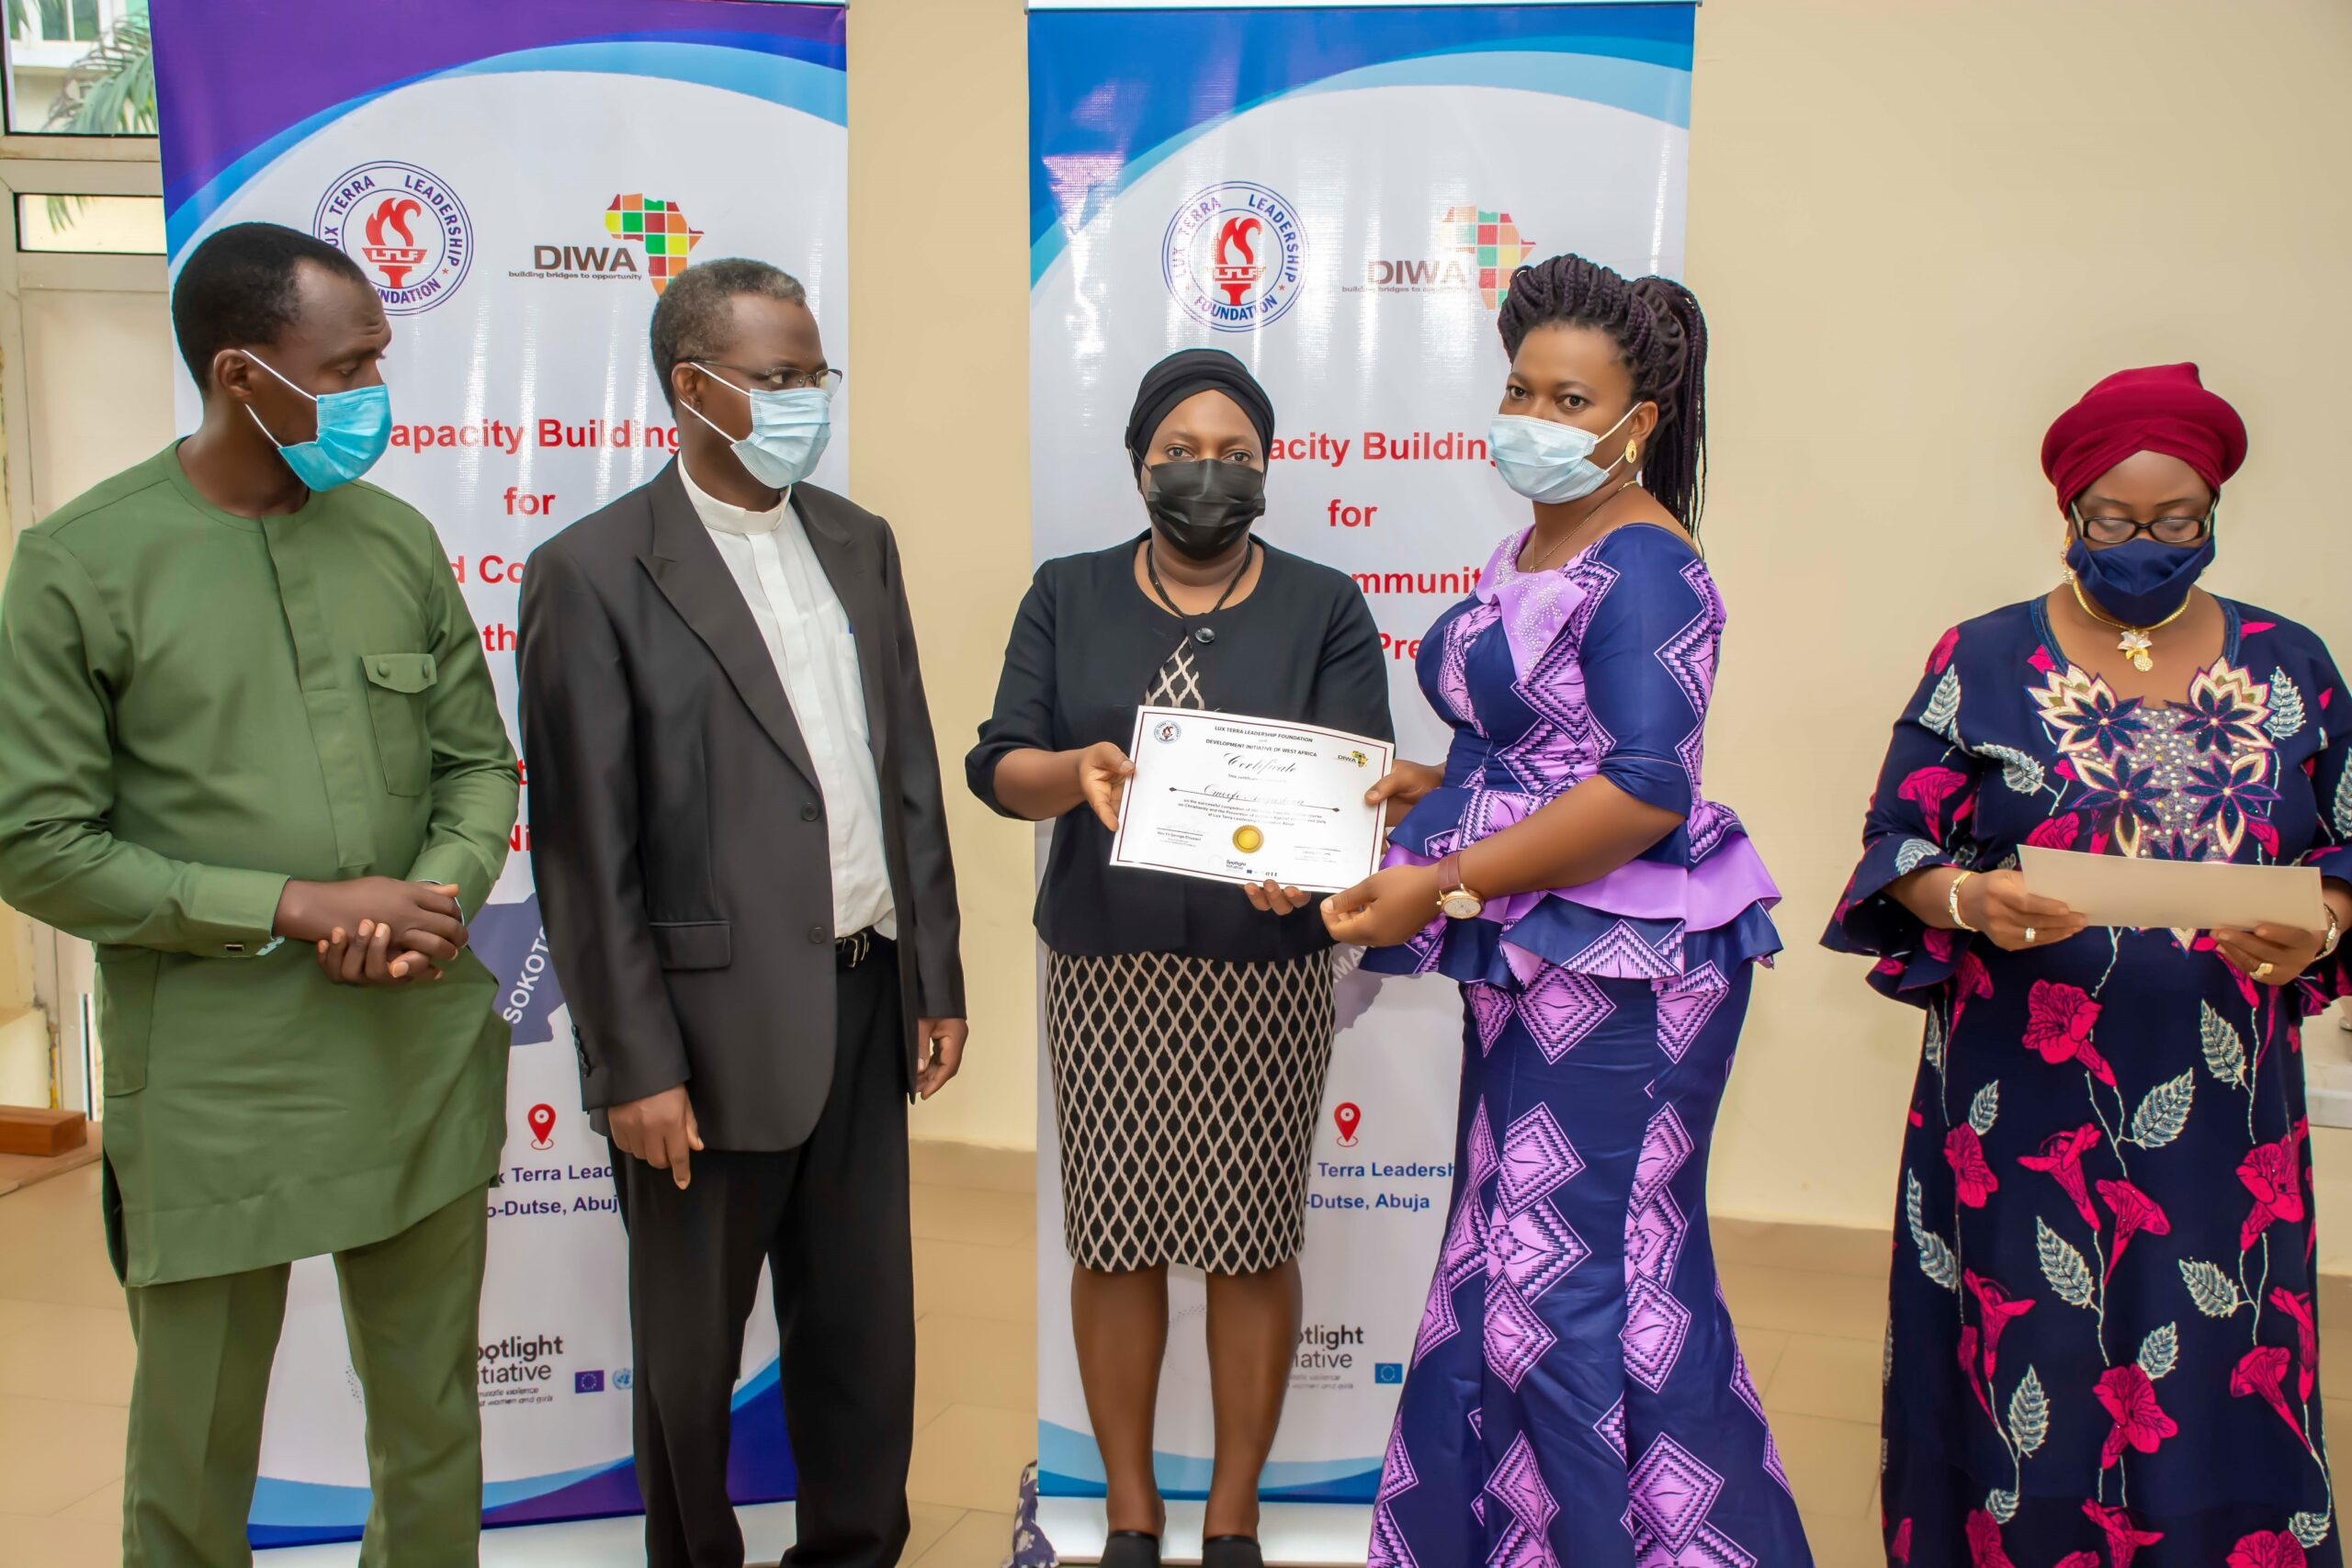 TRAINING OF RELIGIOUS AND COMMUNITY LEADERS ON THE PREVENTION OF VIOLENCE AGAINST WOMEN AND GIRLS ENDS WITH A GRADUATION CEREMONY